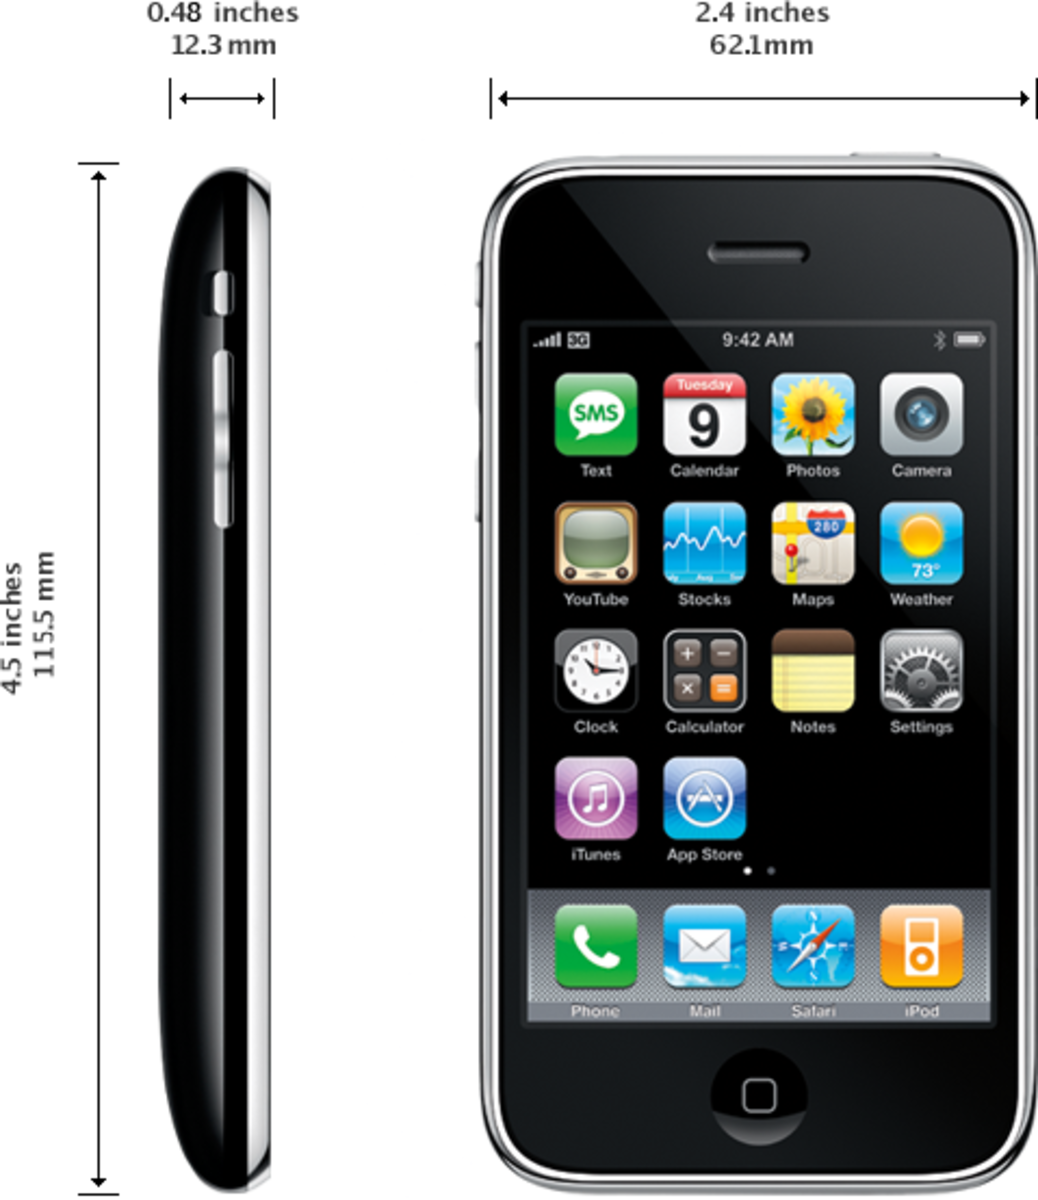 The iPhone 3G featured a black plastic back.